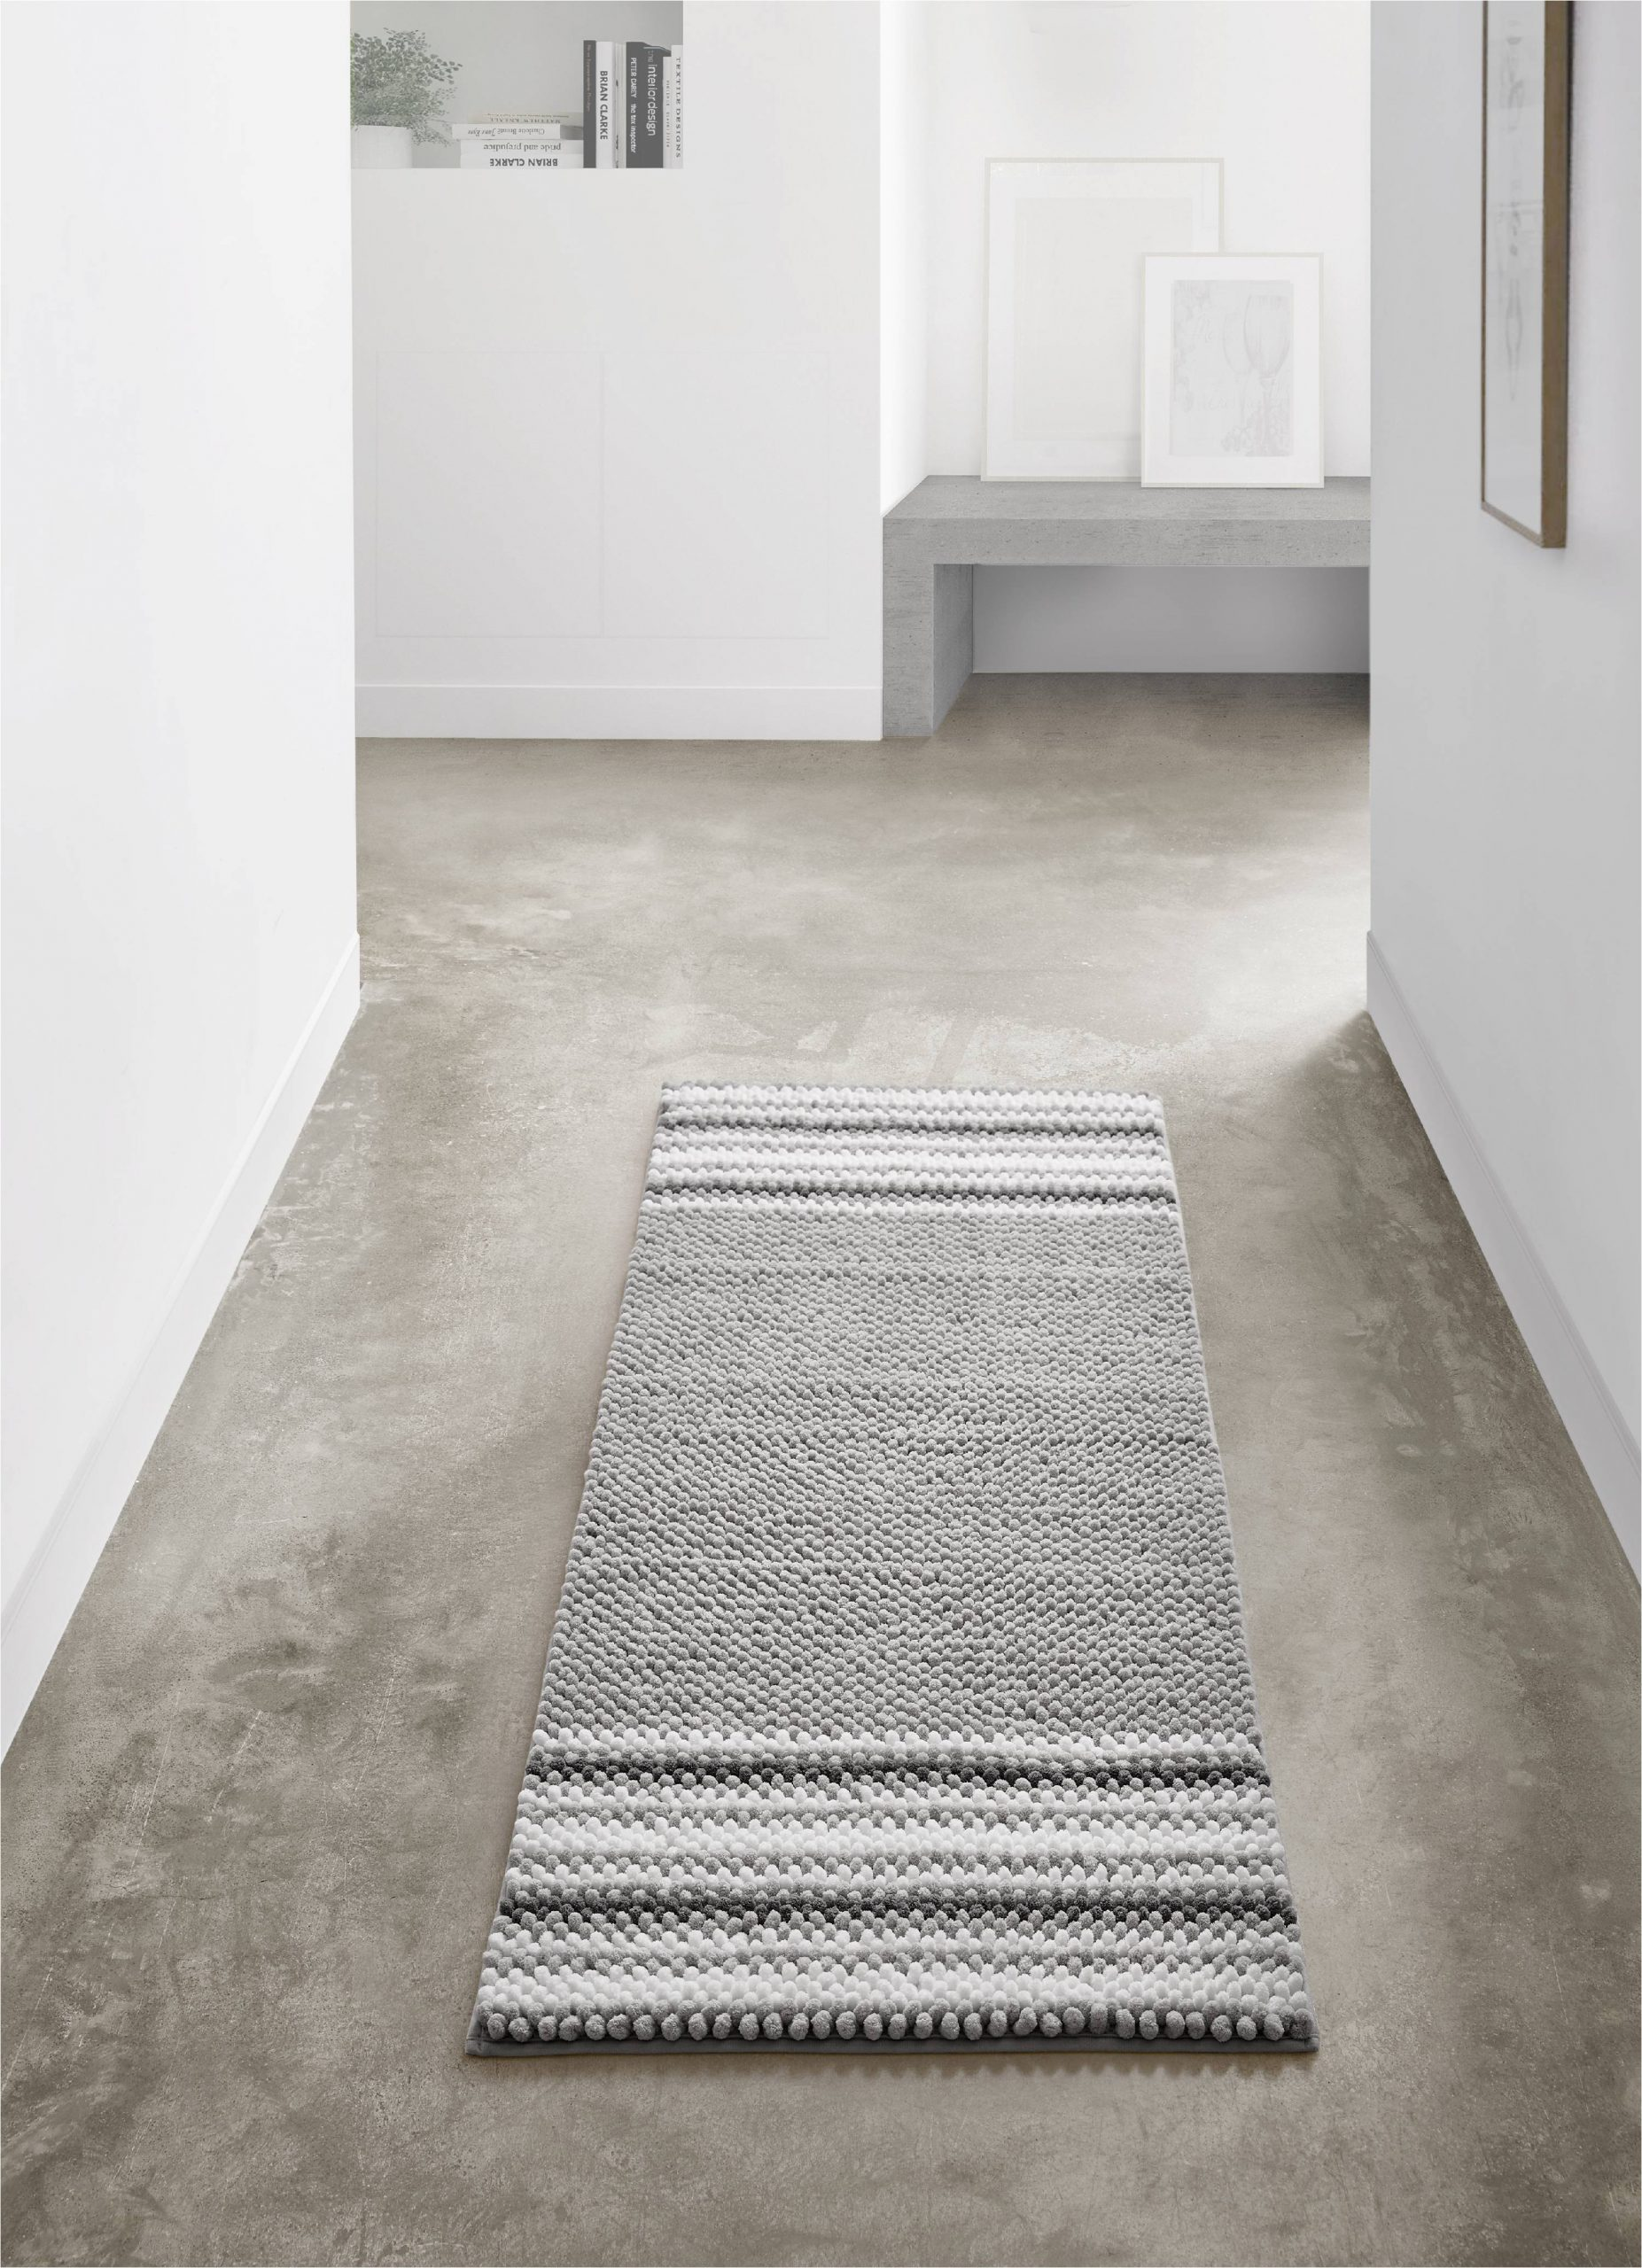 24 X 60 Bathroom Rug Vcny Home Aiden Jacquard Chenille Noodle Bath Runner 24 X 60 Taupe